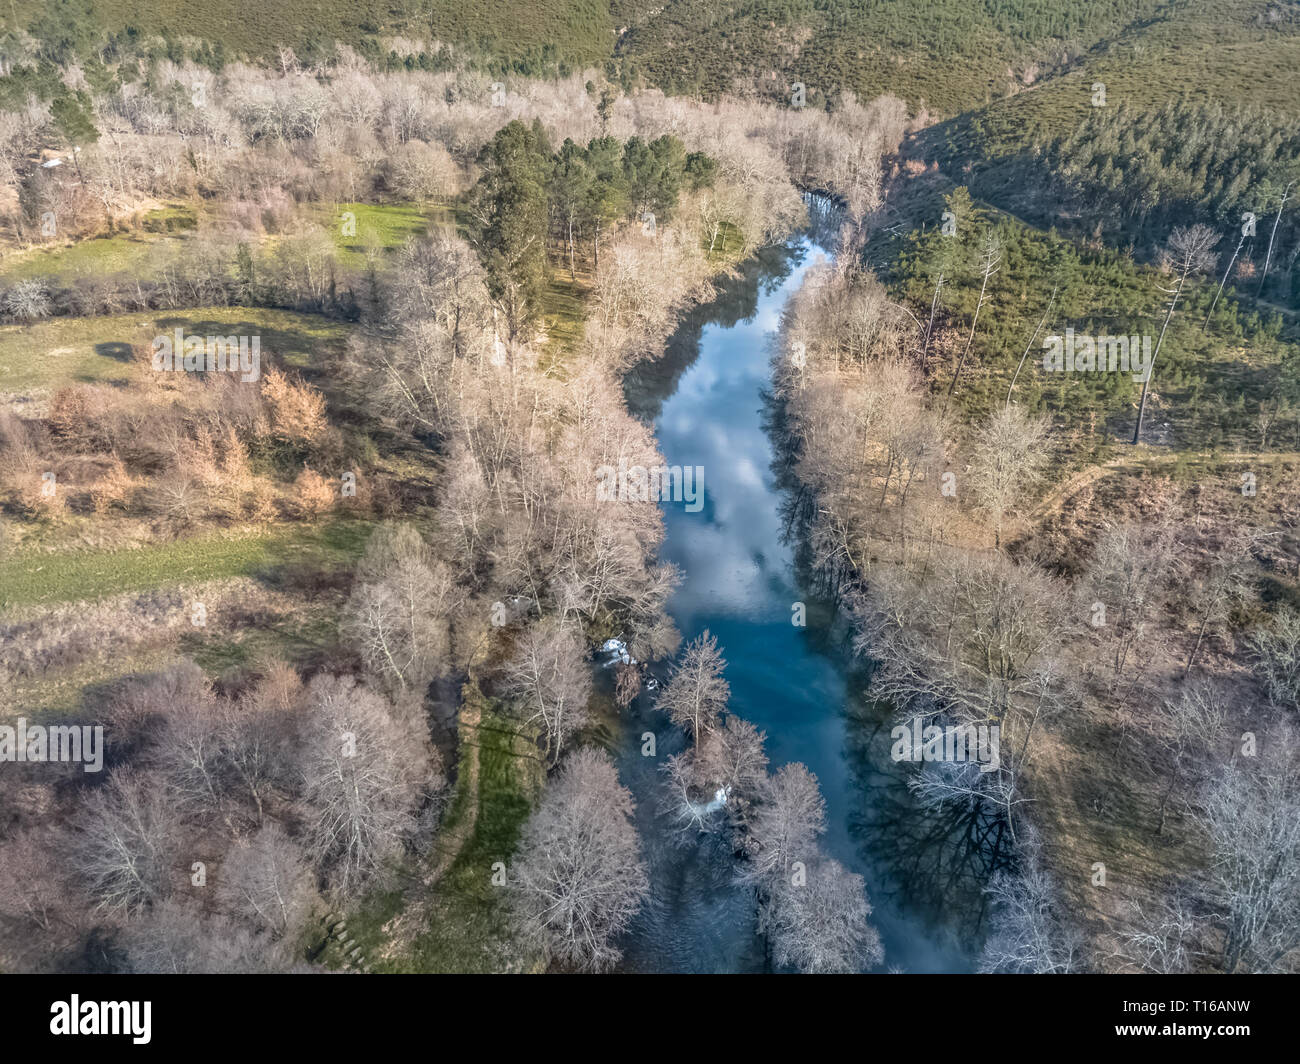 Aerial view of drone, artificial lake and dense forest on the banks, in Portugal - Stock Image